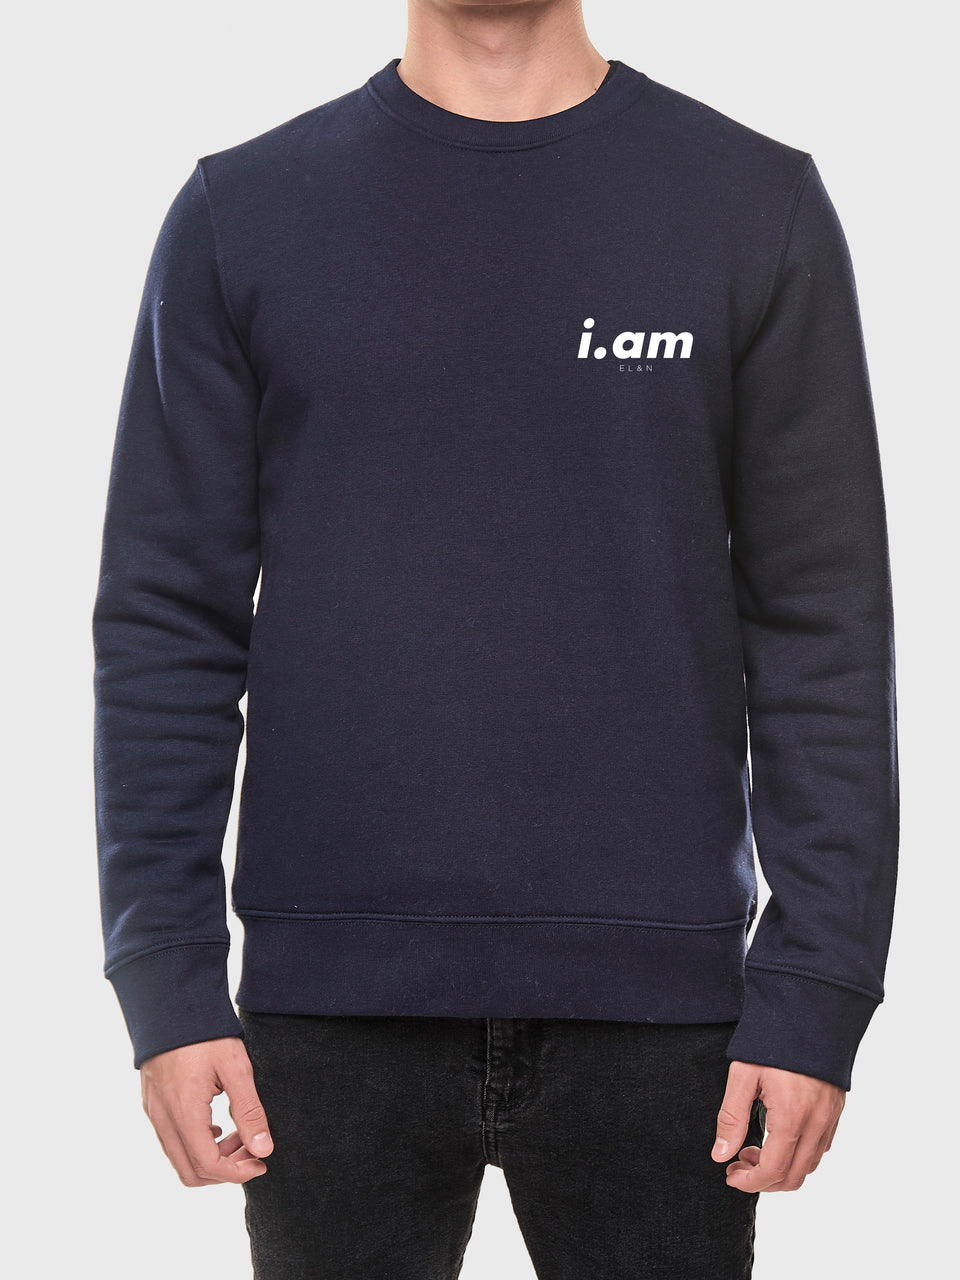 Power - Navy - Unisex sweatshirt